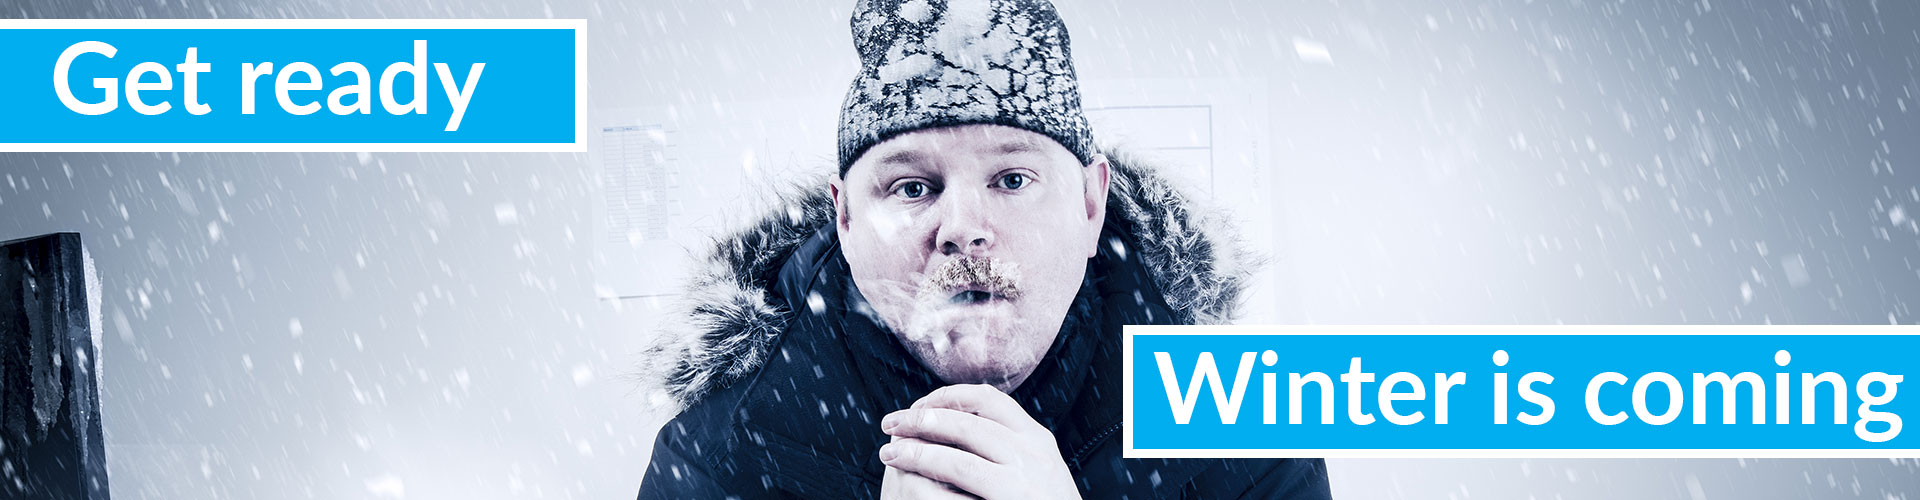 Winter is coming, get an heating system now